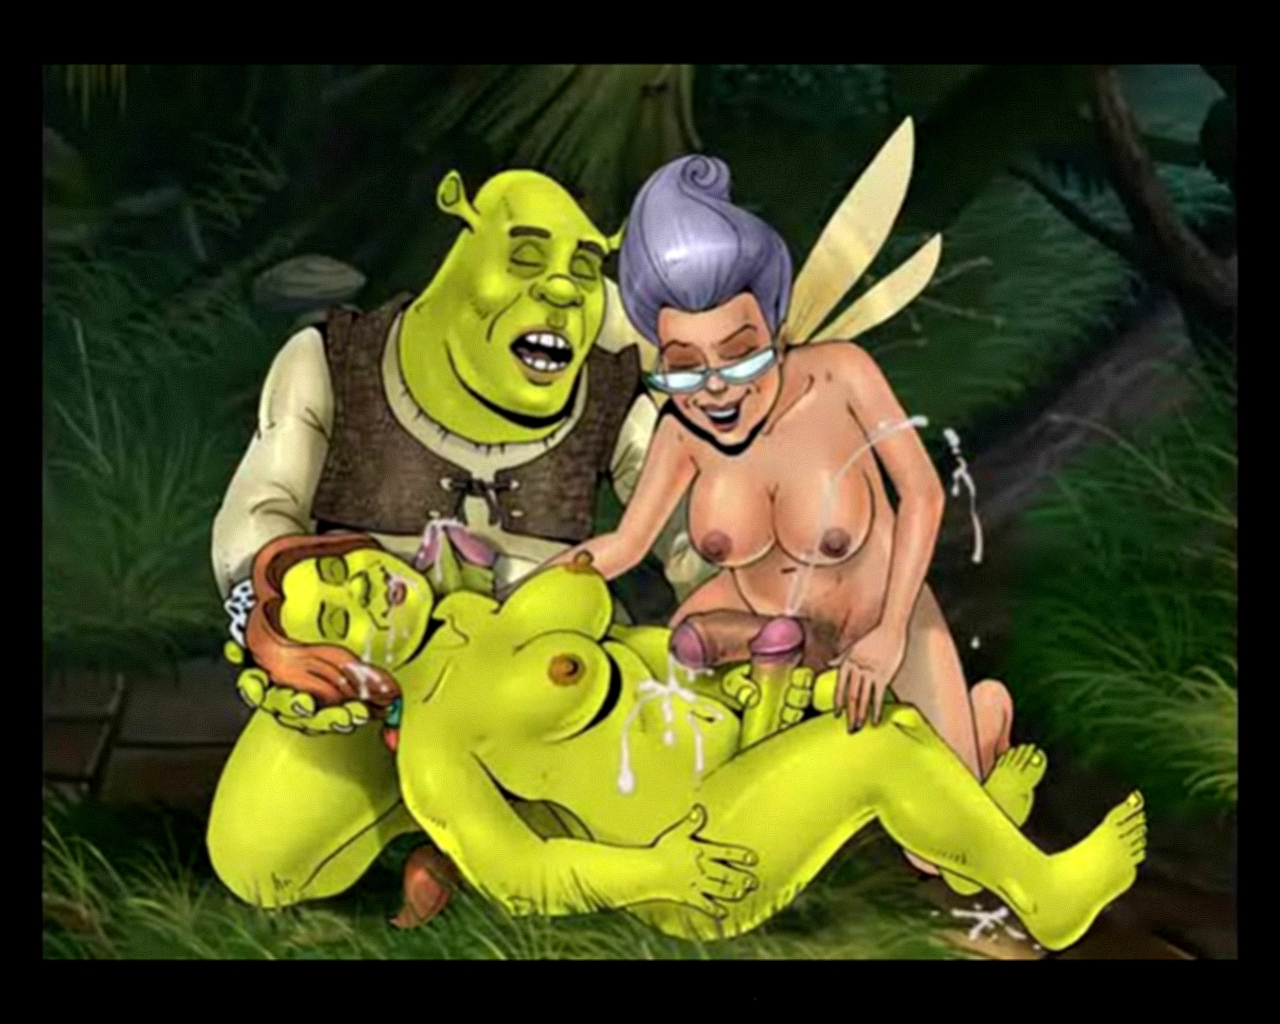 Porno fiona y shrek smut photos